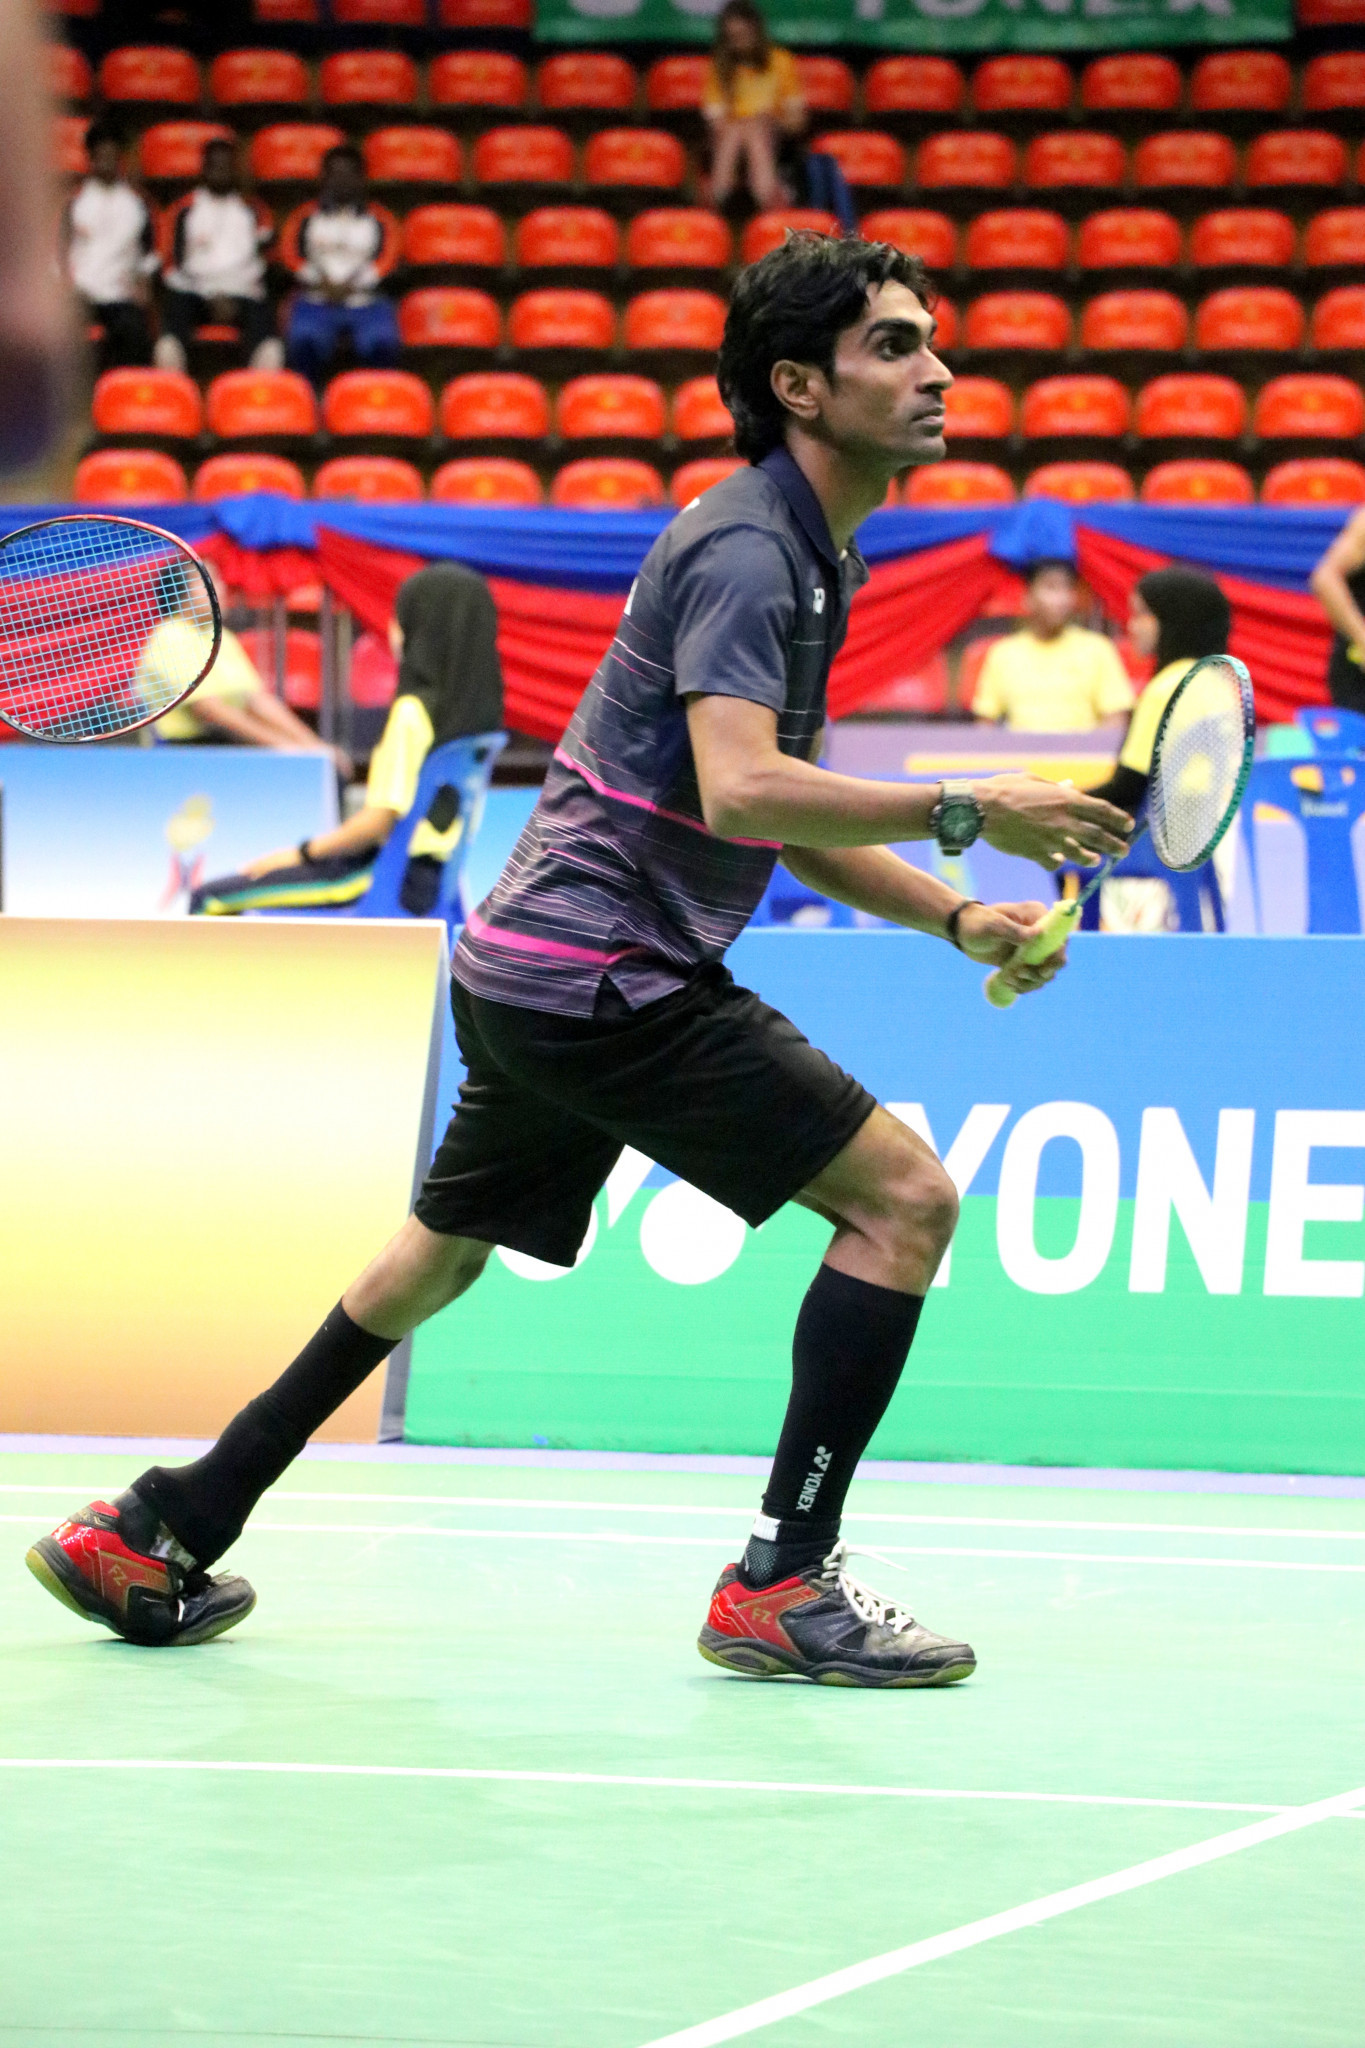 Pramod Bhagat is one of India's main medal hopes for next year's Paralympic Games in Tokyo ©APC